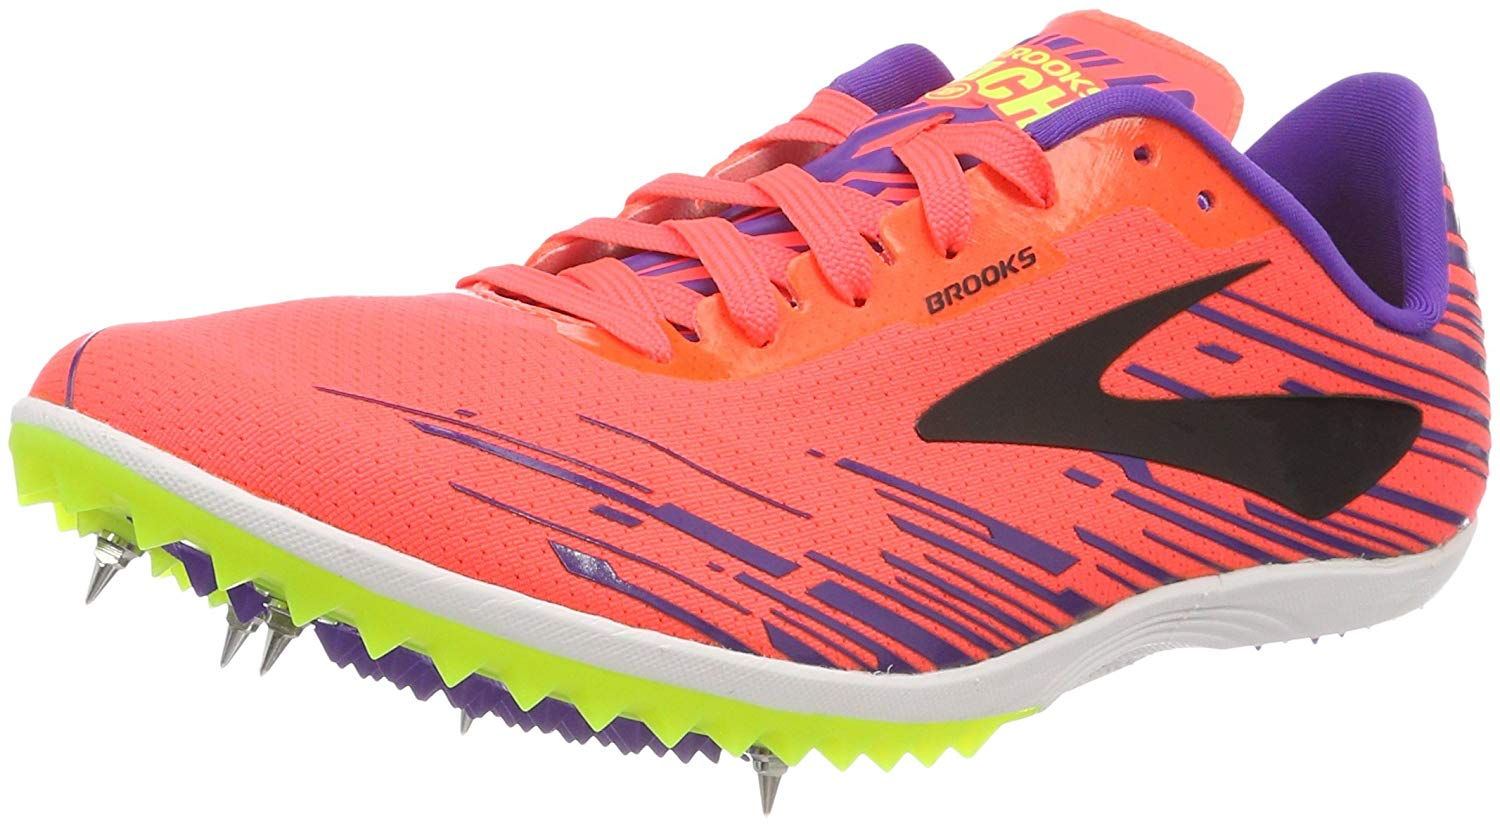 91f4d457cbe97 Get Quotations · Brooks Mach 18 Women s Cross Country Spikes Fiery  Coral Electric Purple Black Size 9